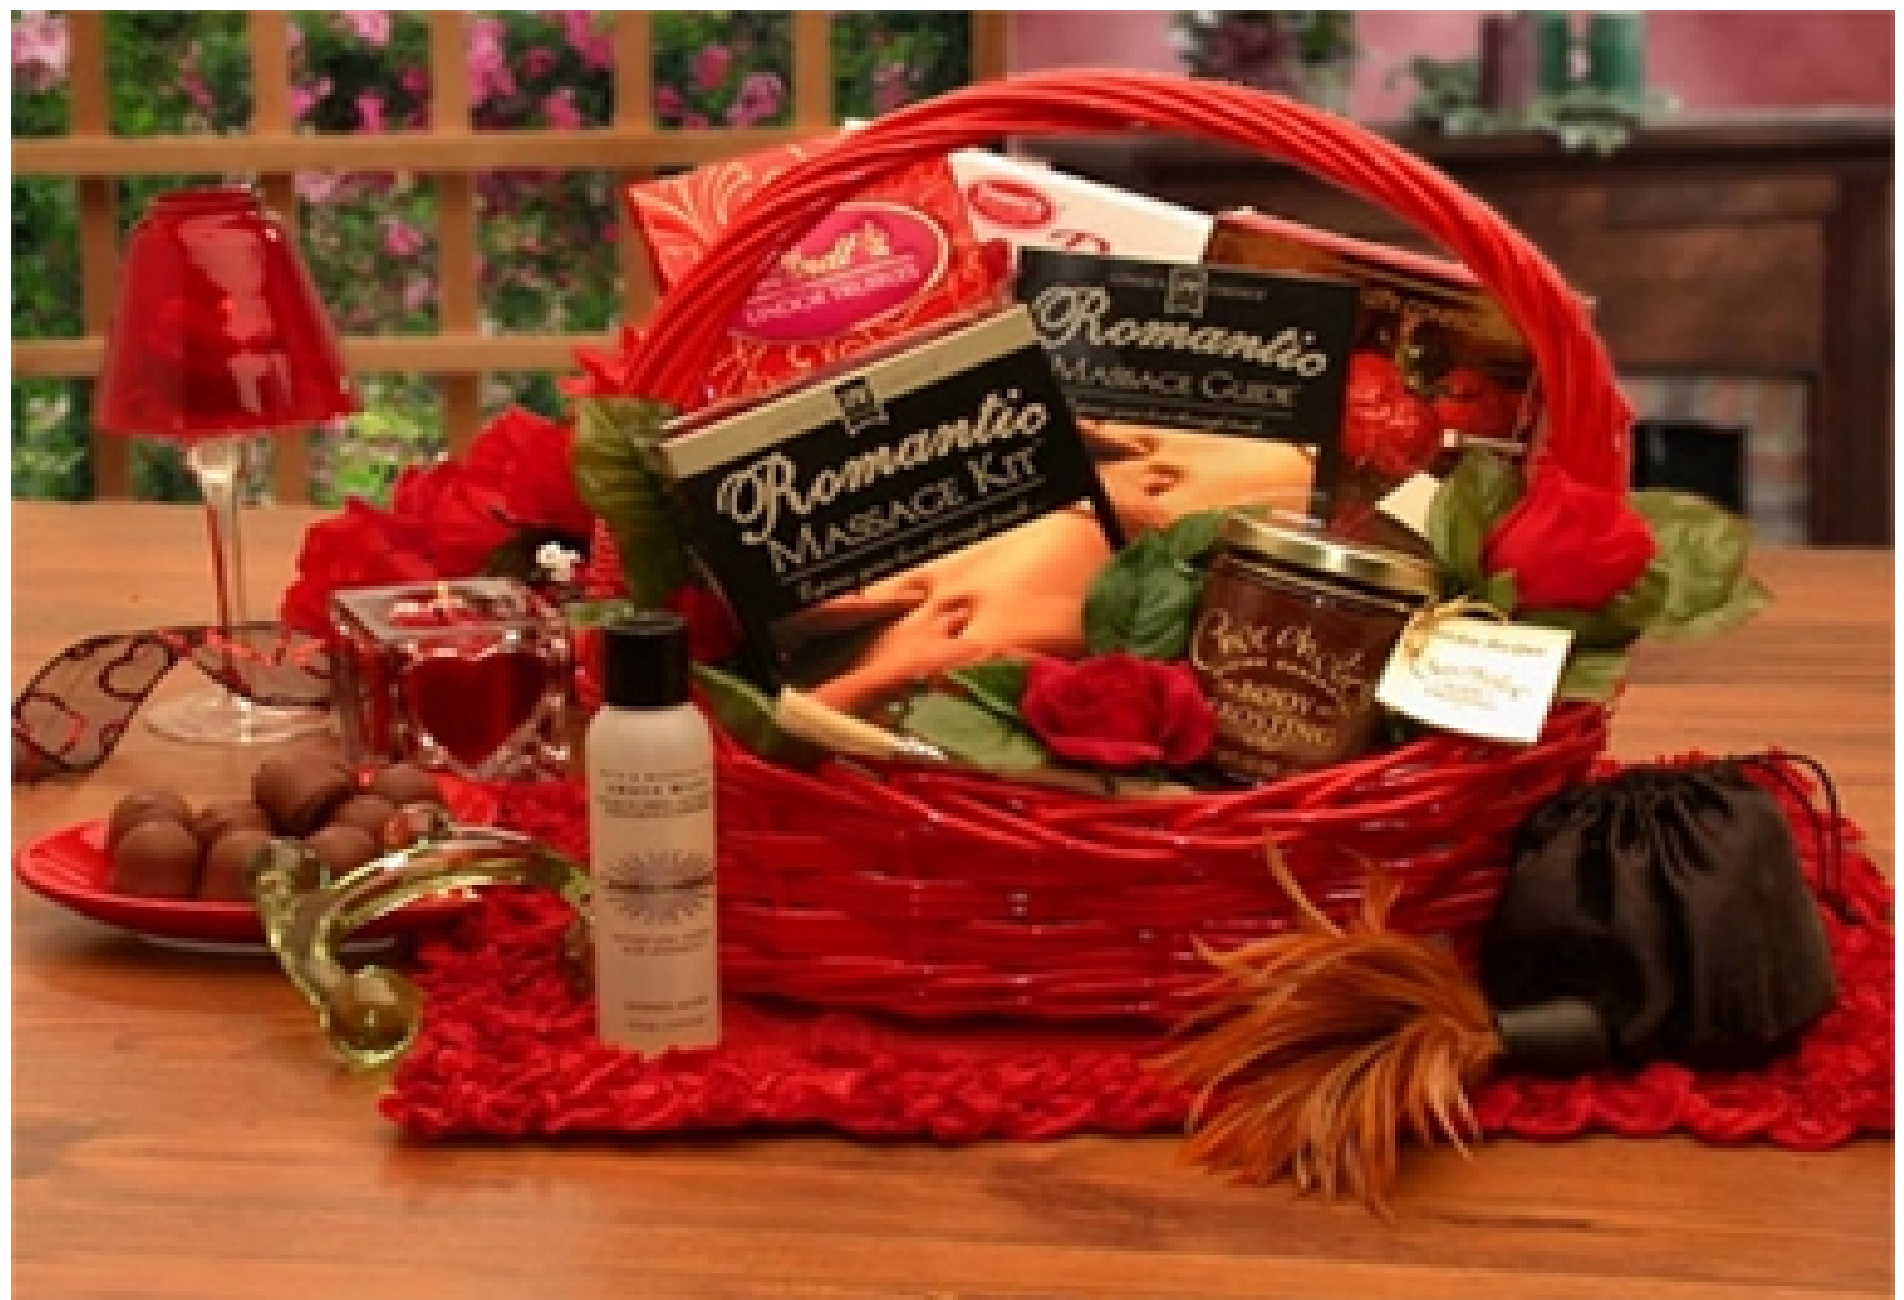 A Romantic Gift Basket